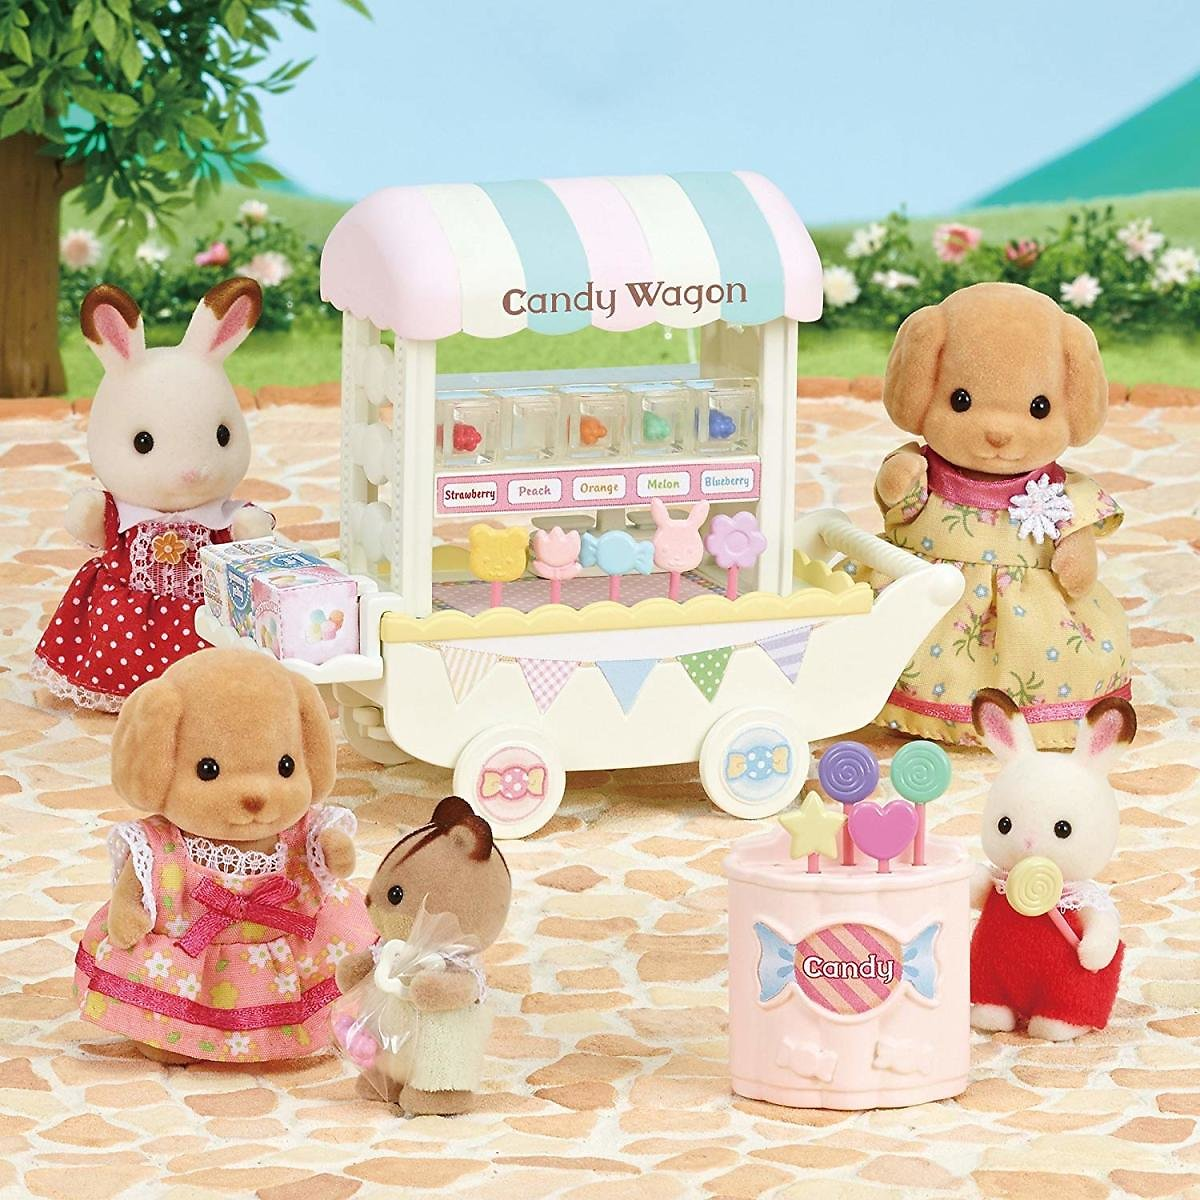 Calico Critters Candy Wagon